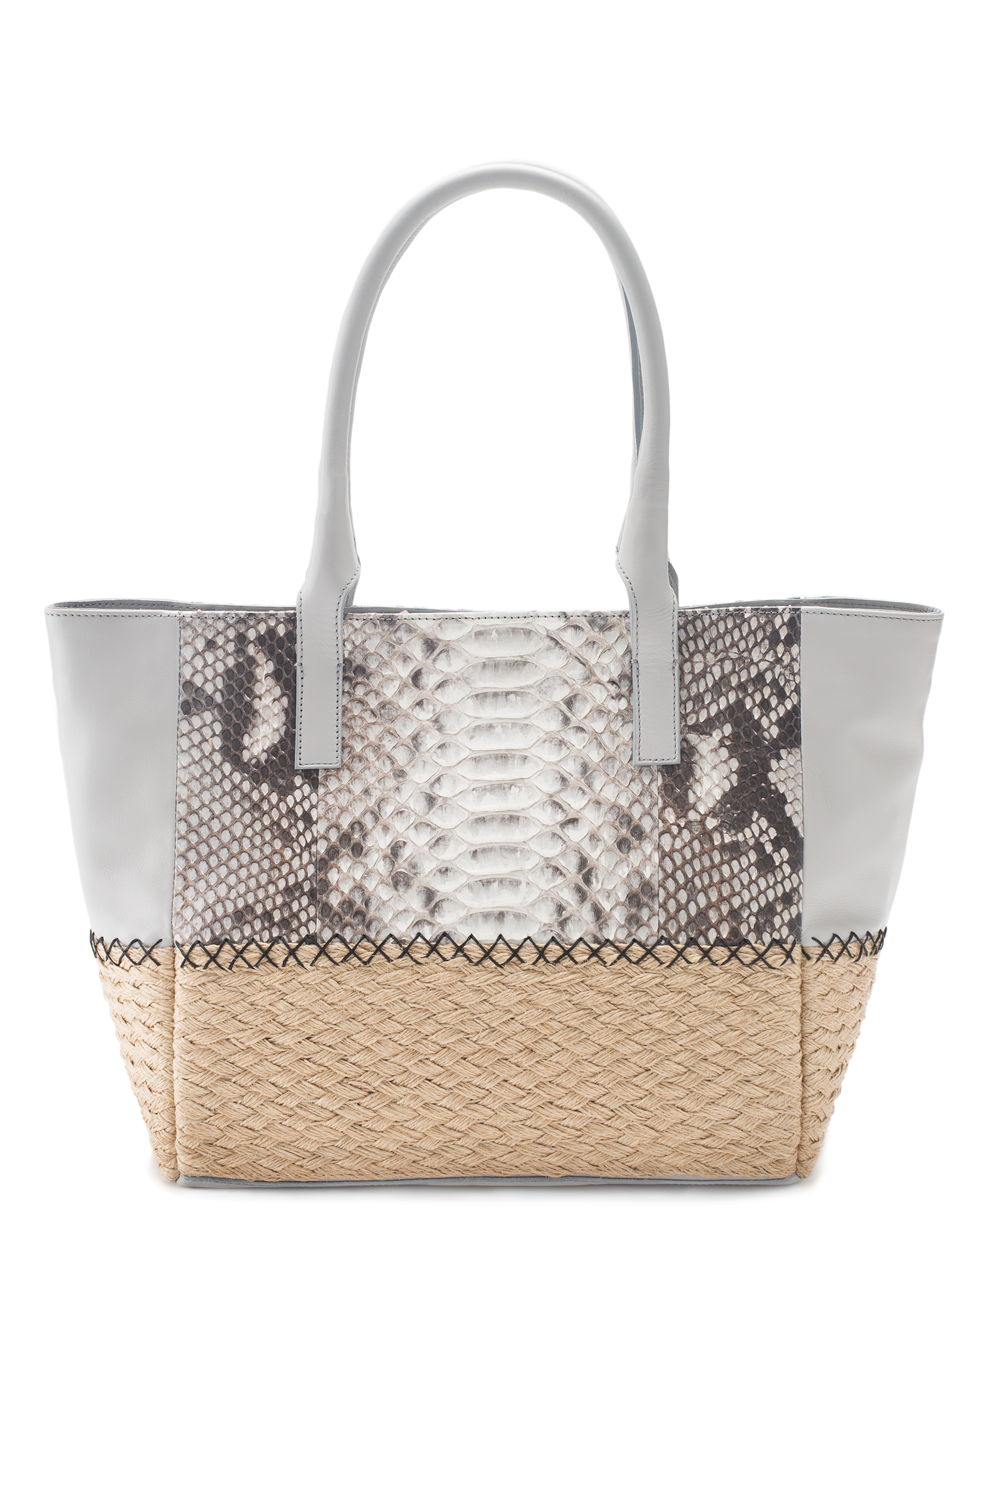 Mel Boteri | Harbor Grey Python Leather & Espadrille 'Ellis Mini' Tote | Back View